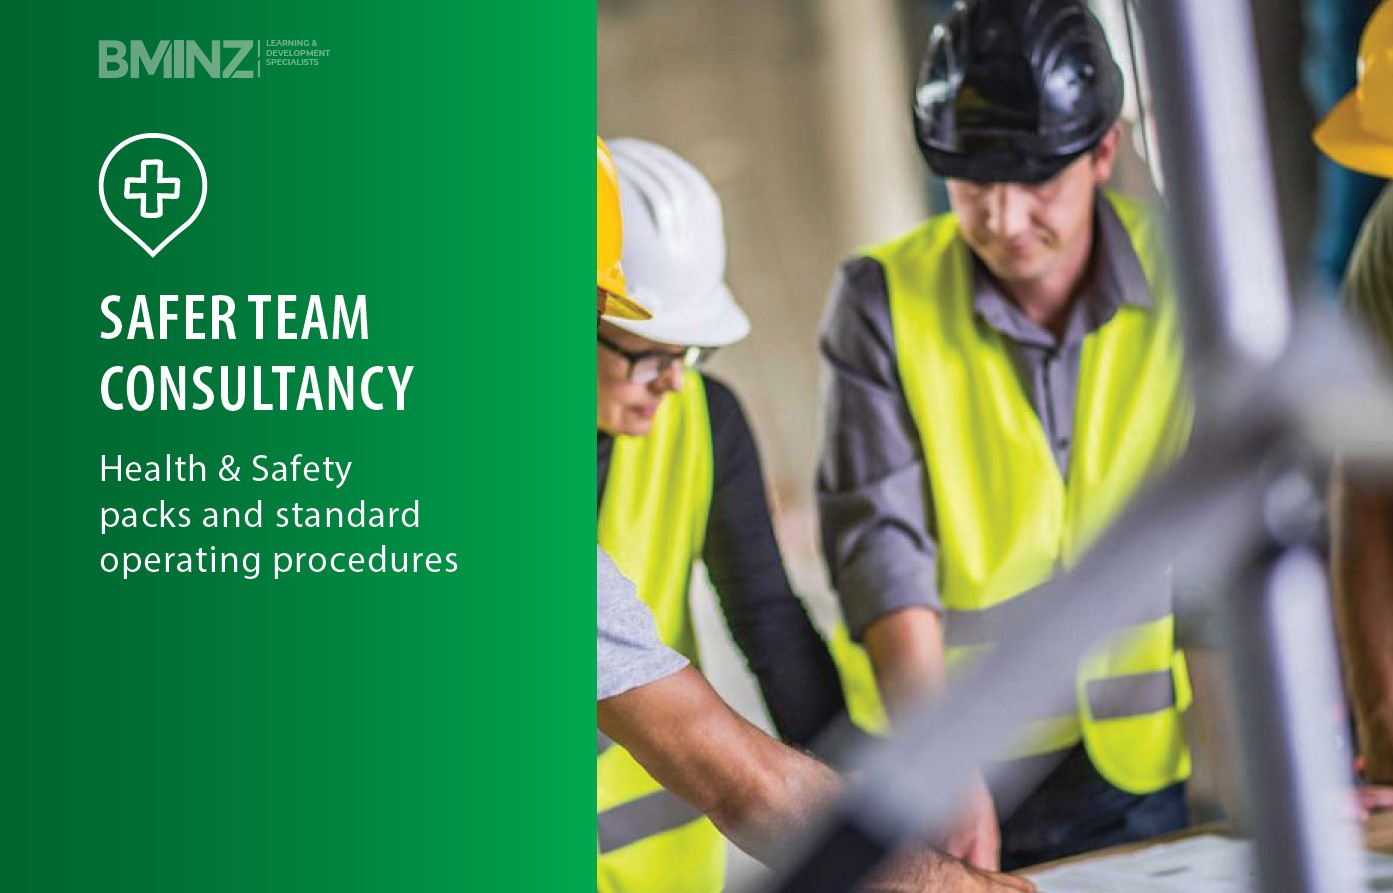 SAFER TEAM CONSULTANCY: Health & Safety packs and standard operating procedures